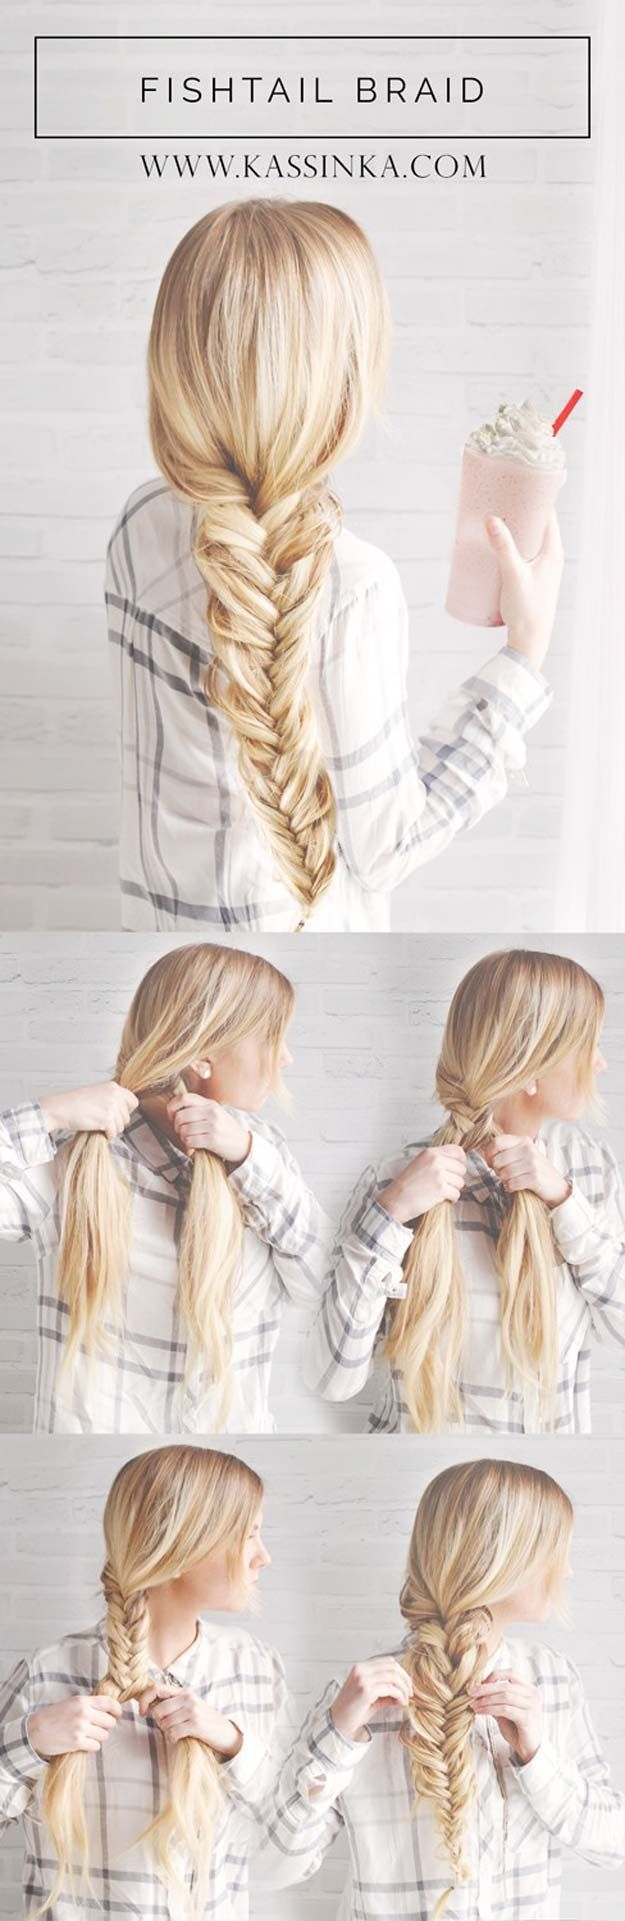 how to draw french braids step by step